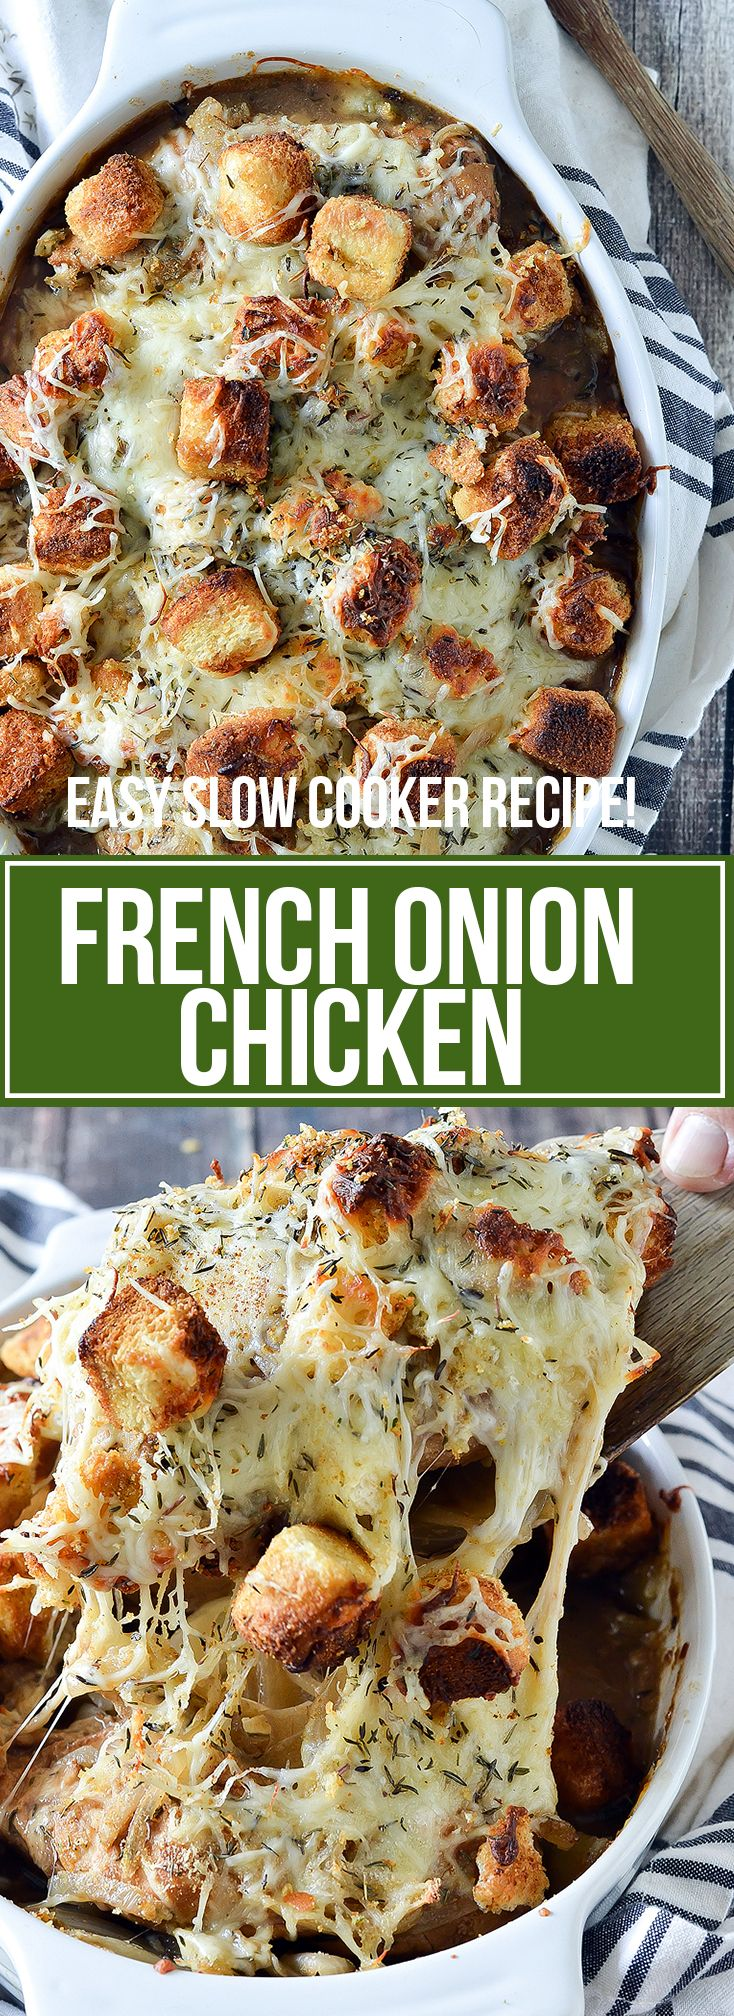 Slow Cooker French Onion Chicken #slowcookerrecipes